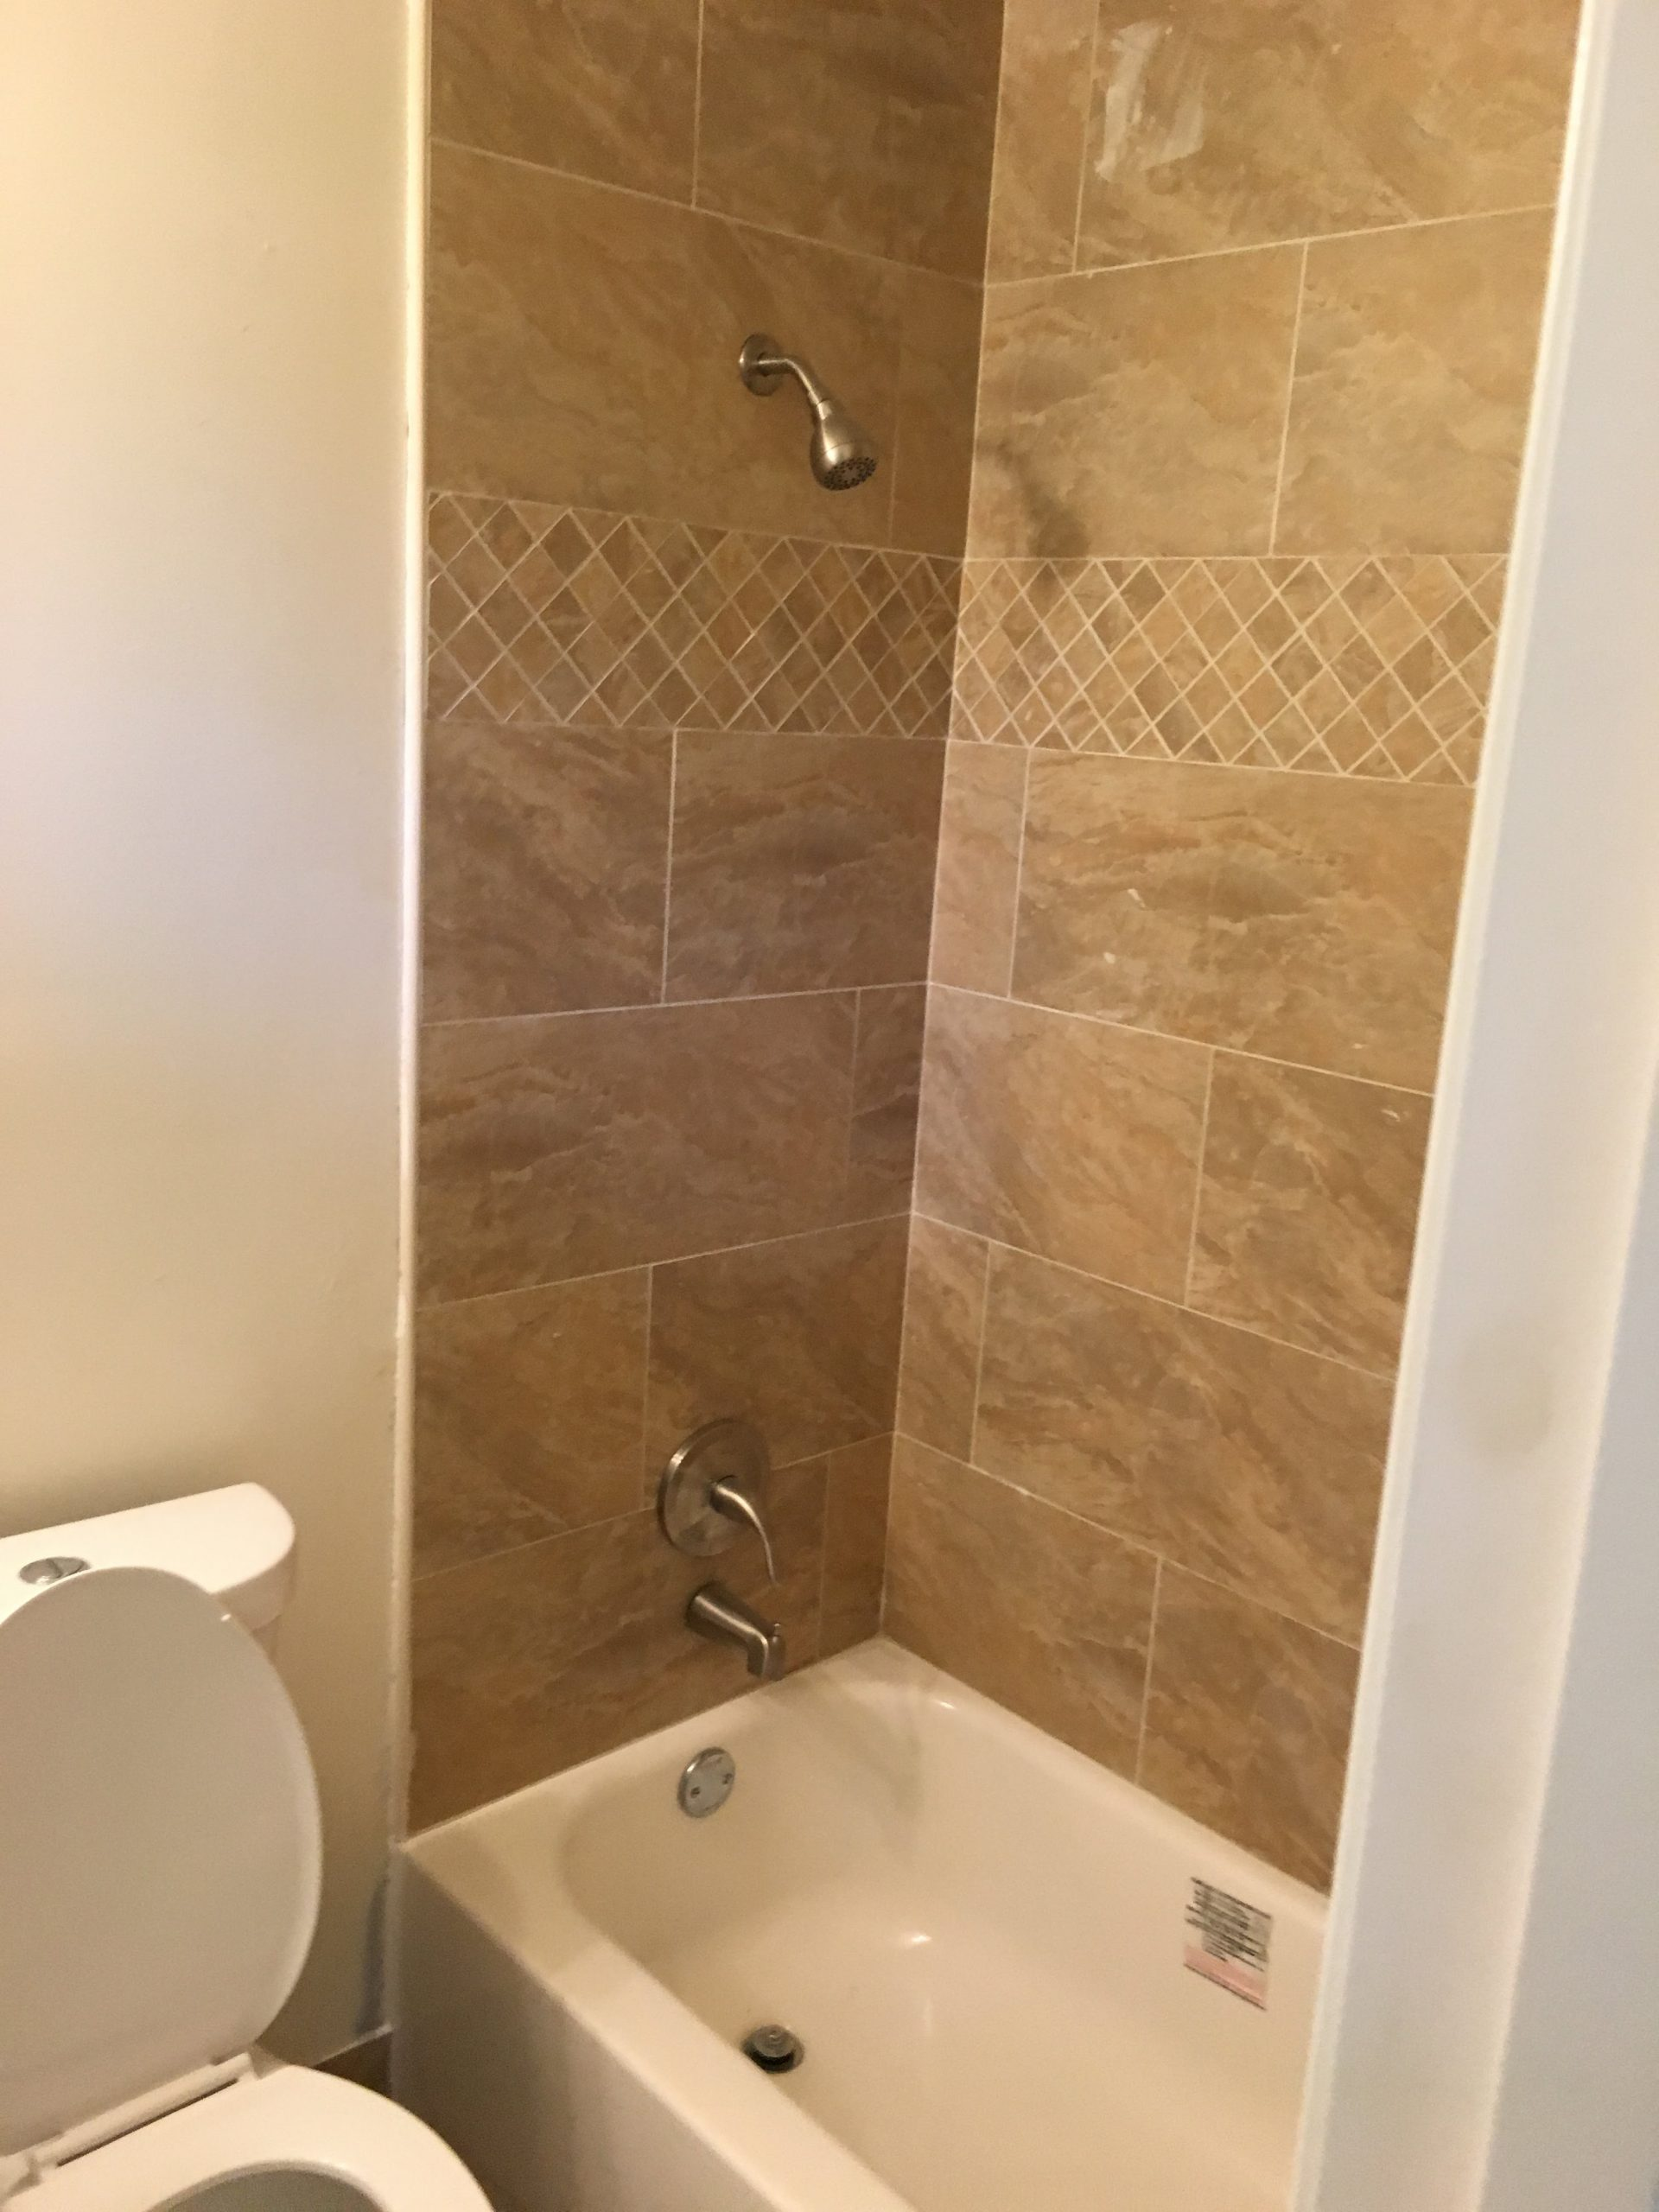 Bathroom Renovations – Whole House Remodel